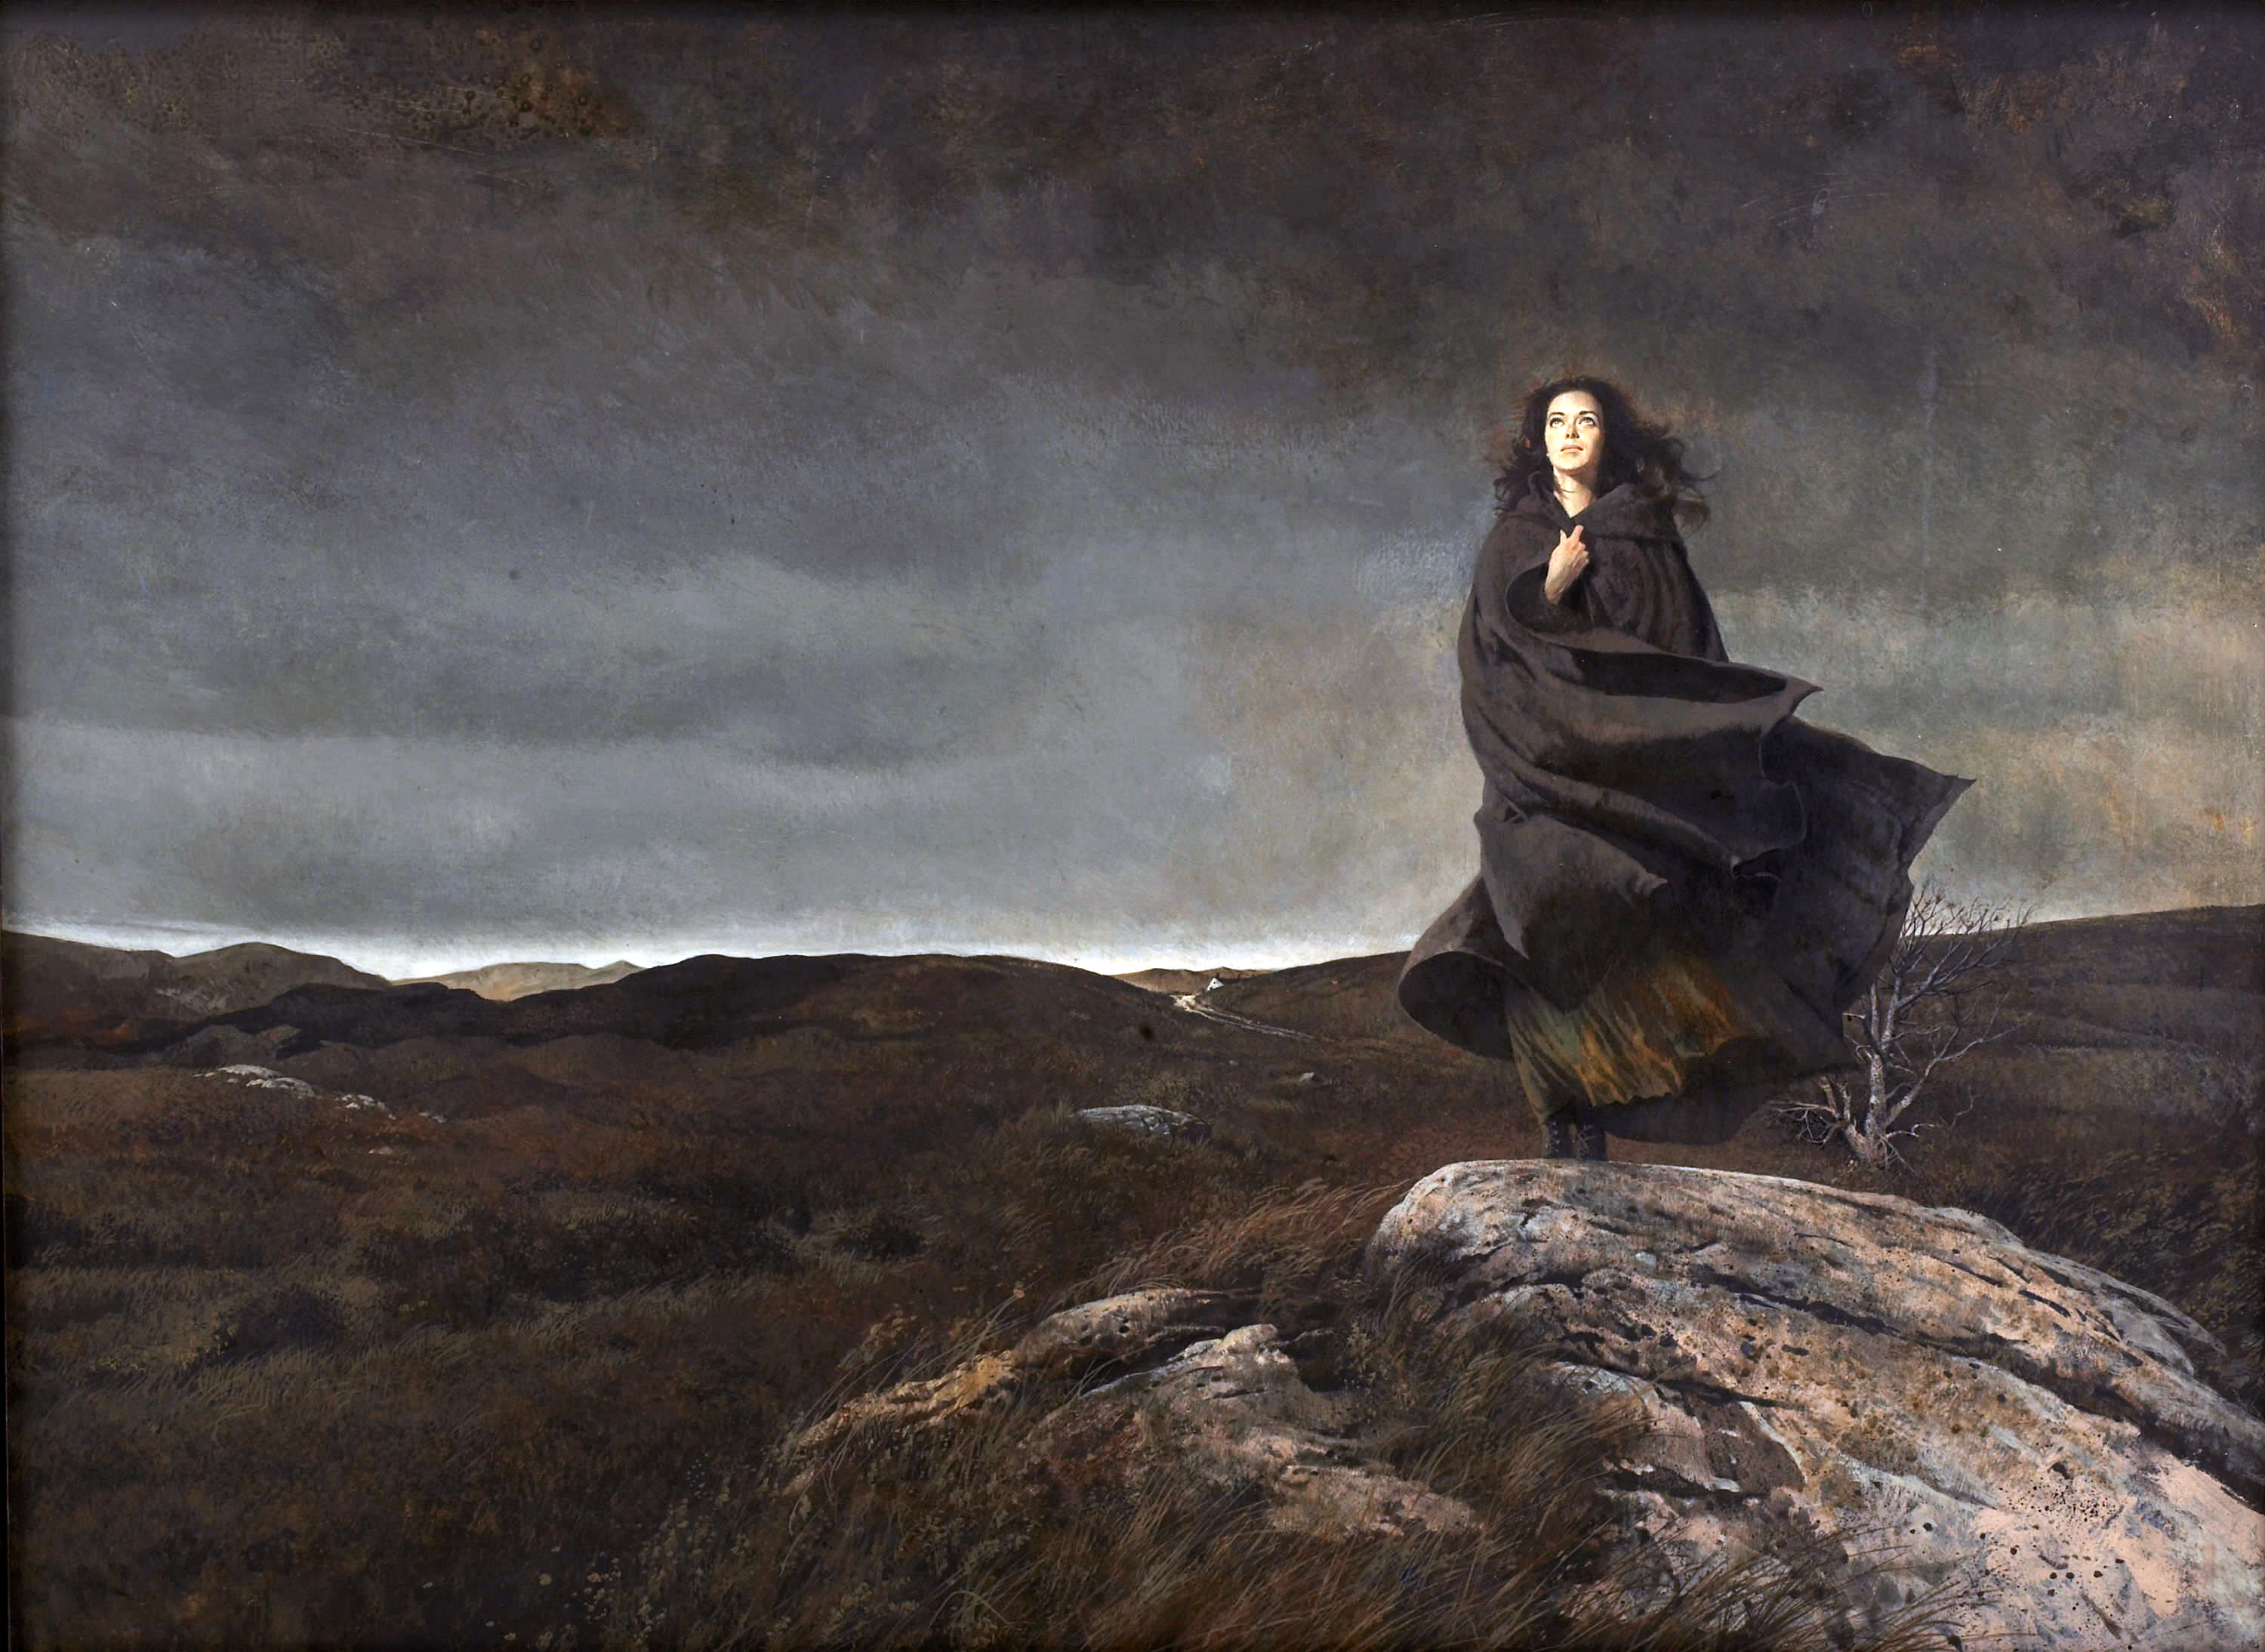 thesis wuthering heights my first litreactor column vampires in wuthering heights annie annie neugebauer my first litreactor column vampires in wuthering heights annie annie